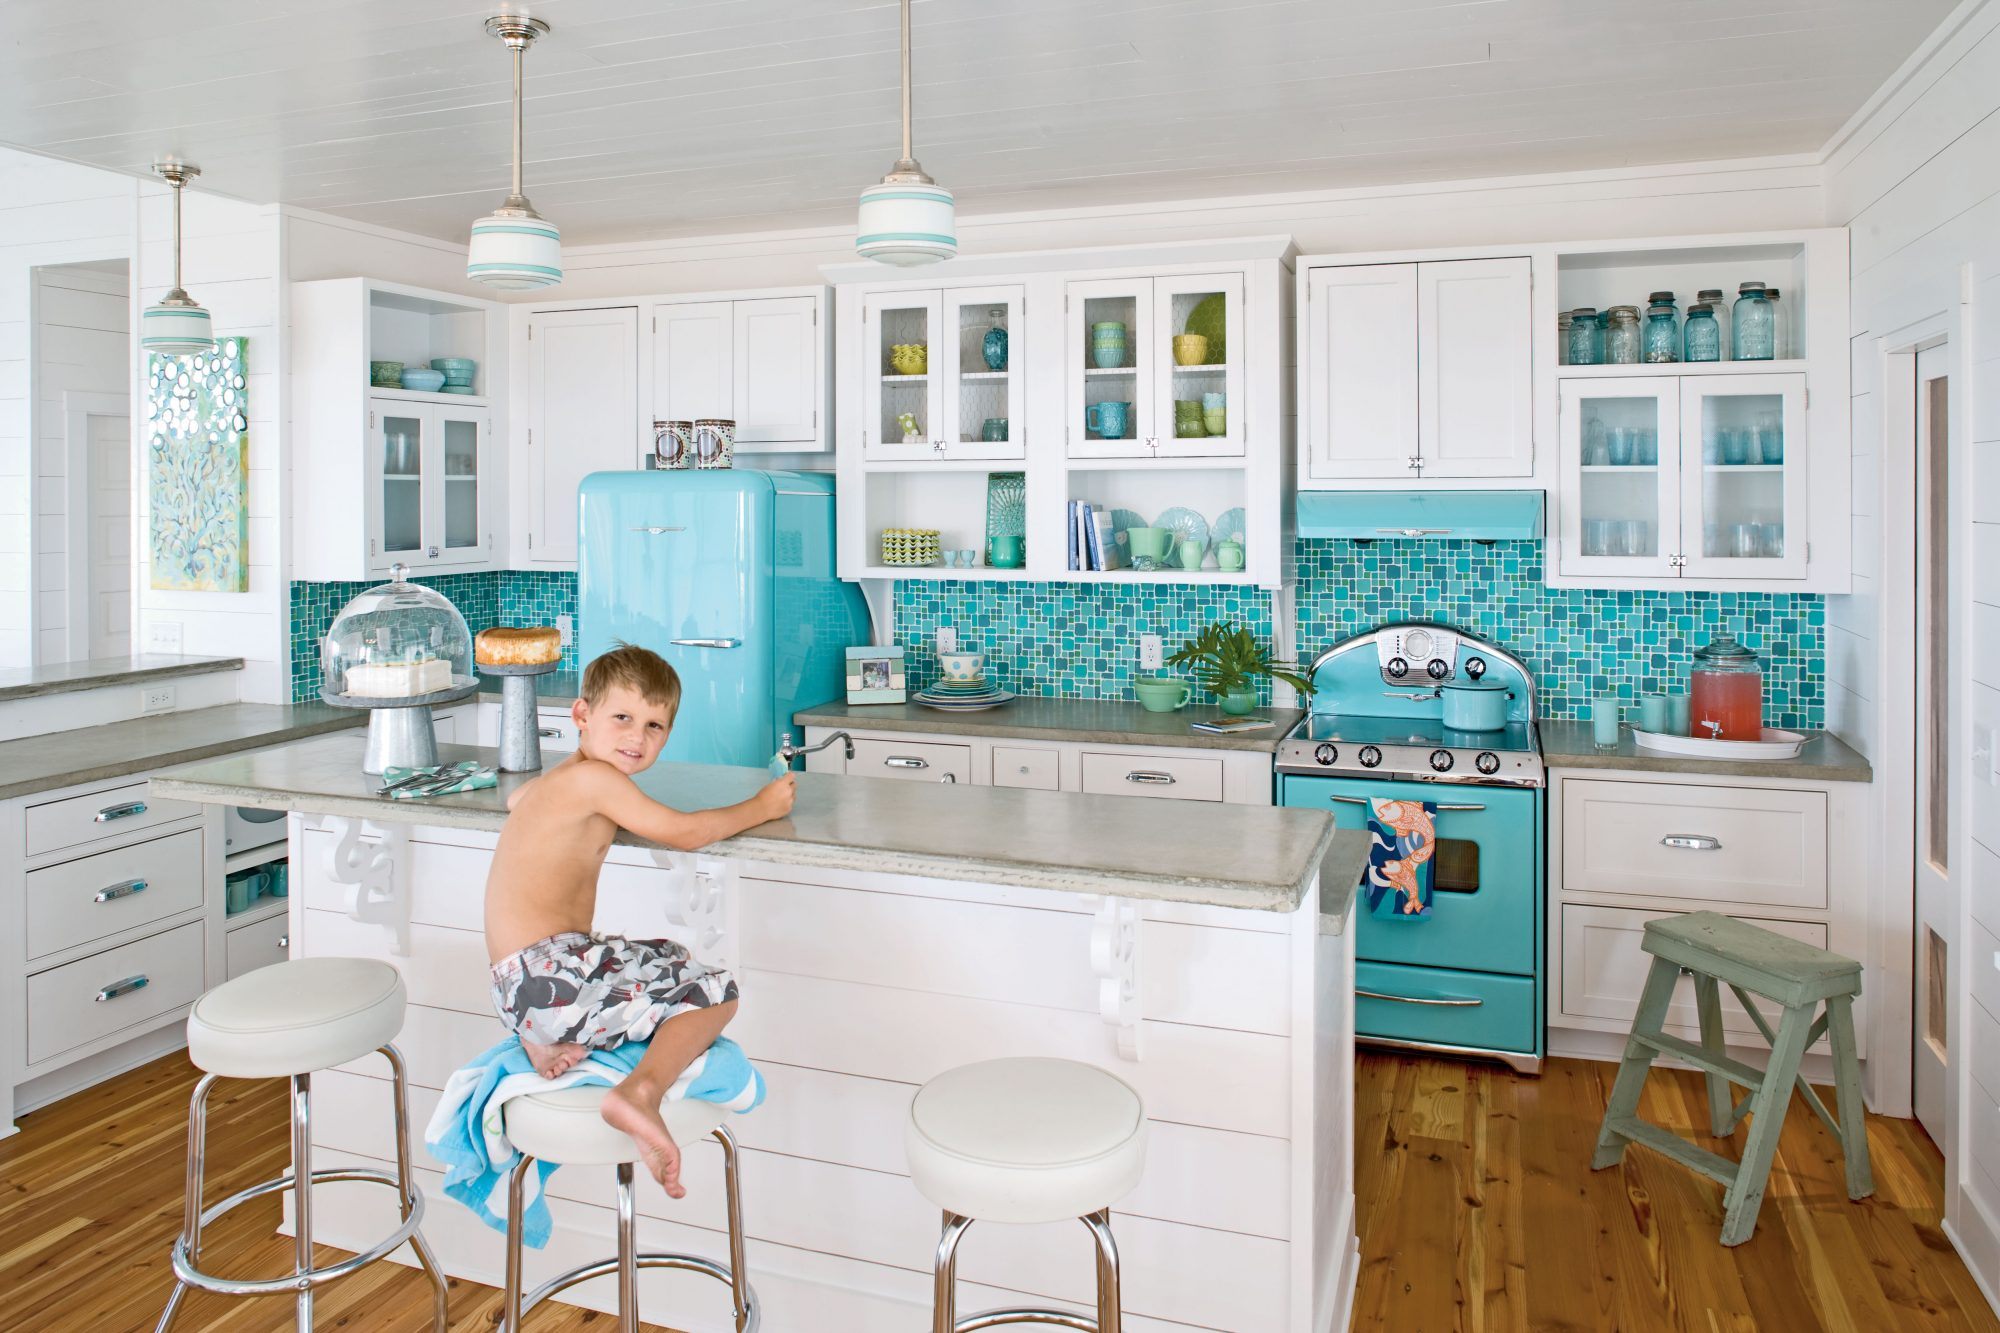 The punchy turquoise hue of the vintage-style appliance puts a chic spin on the space. A tumbled-glass backsplash mimics natural sea glass and contrasts the sleek concrete countertops. Reproduction pendant lighting and period barstools top off the soda fountain look the homeowners hoped to achieve.